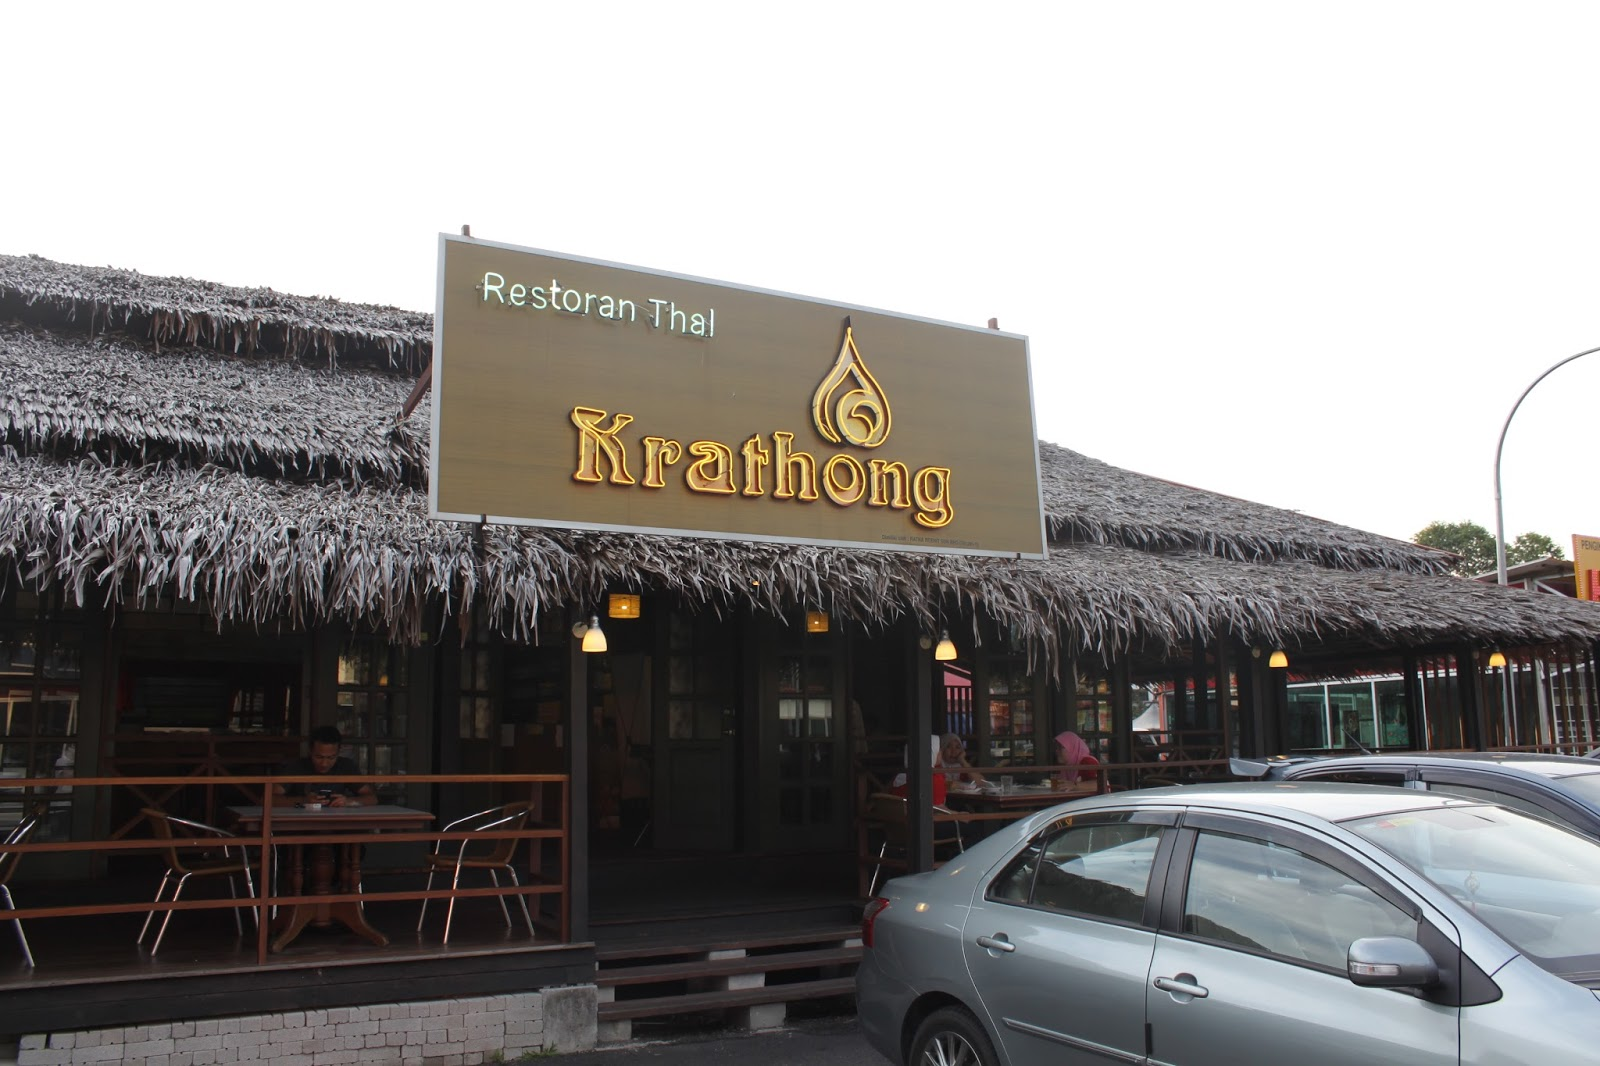 Krathong restaurant.